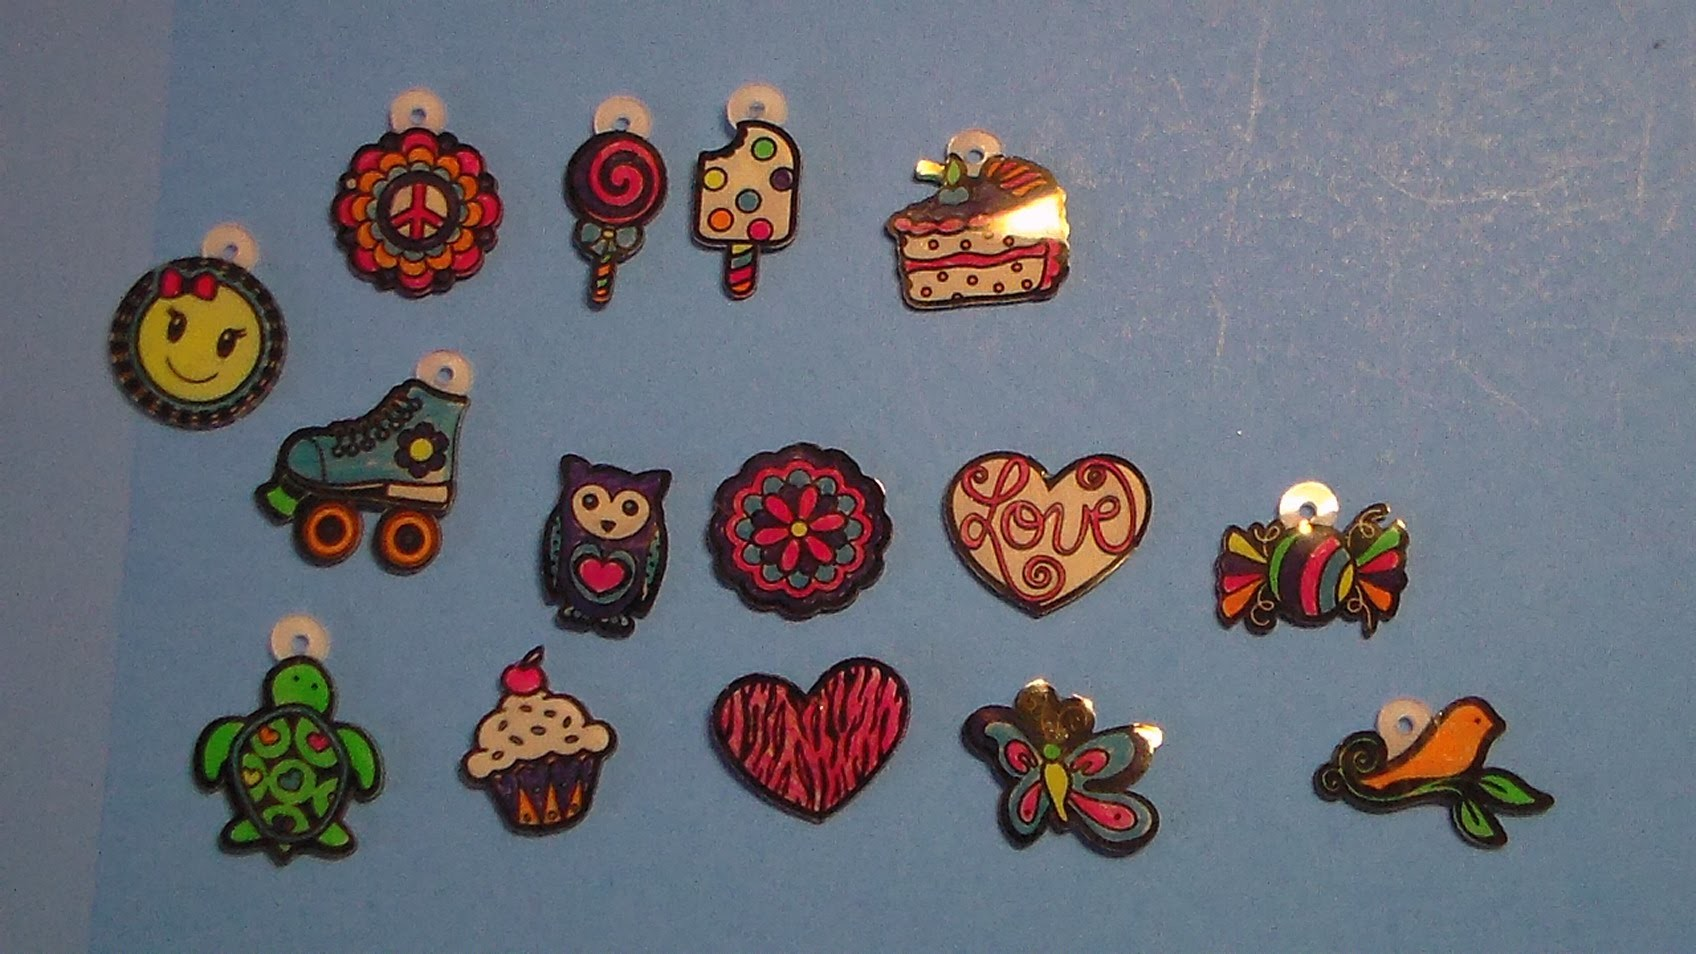 Shrinky Dinks Neon Jewelry Making Kit - Rings, Bracelet, Barrettes, Necklace, Hair Accessories